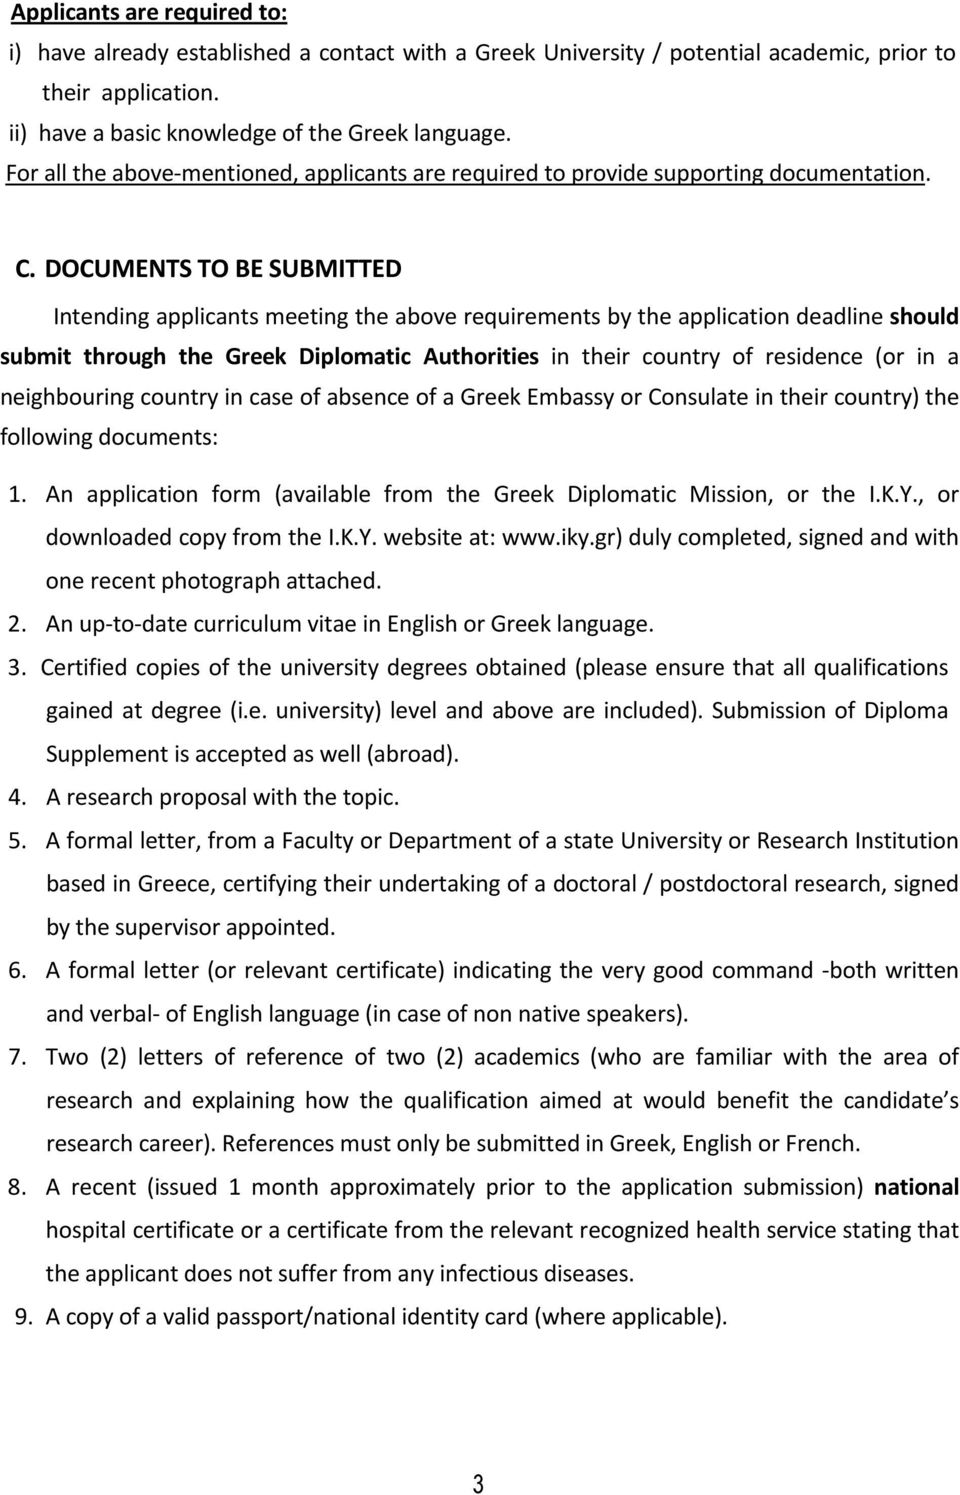 DOCUMENTS TO BE SUBMITTED Intending applicants meeting the above requirements by the application deadline should submit through the Greek Diplomatic Authorities in their country of residence (or in a